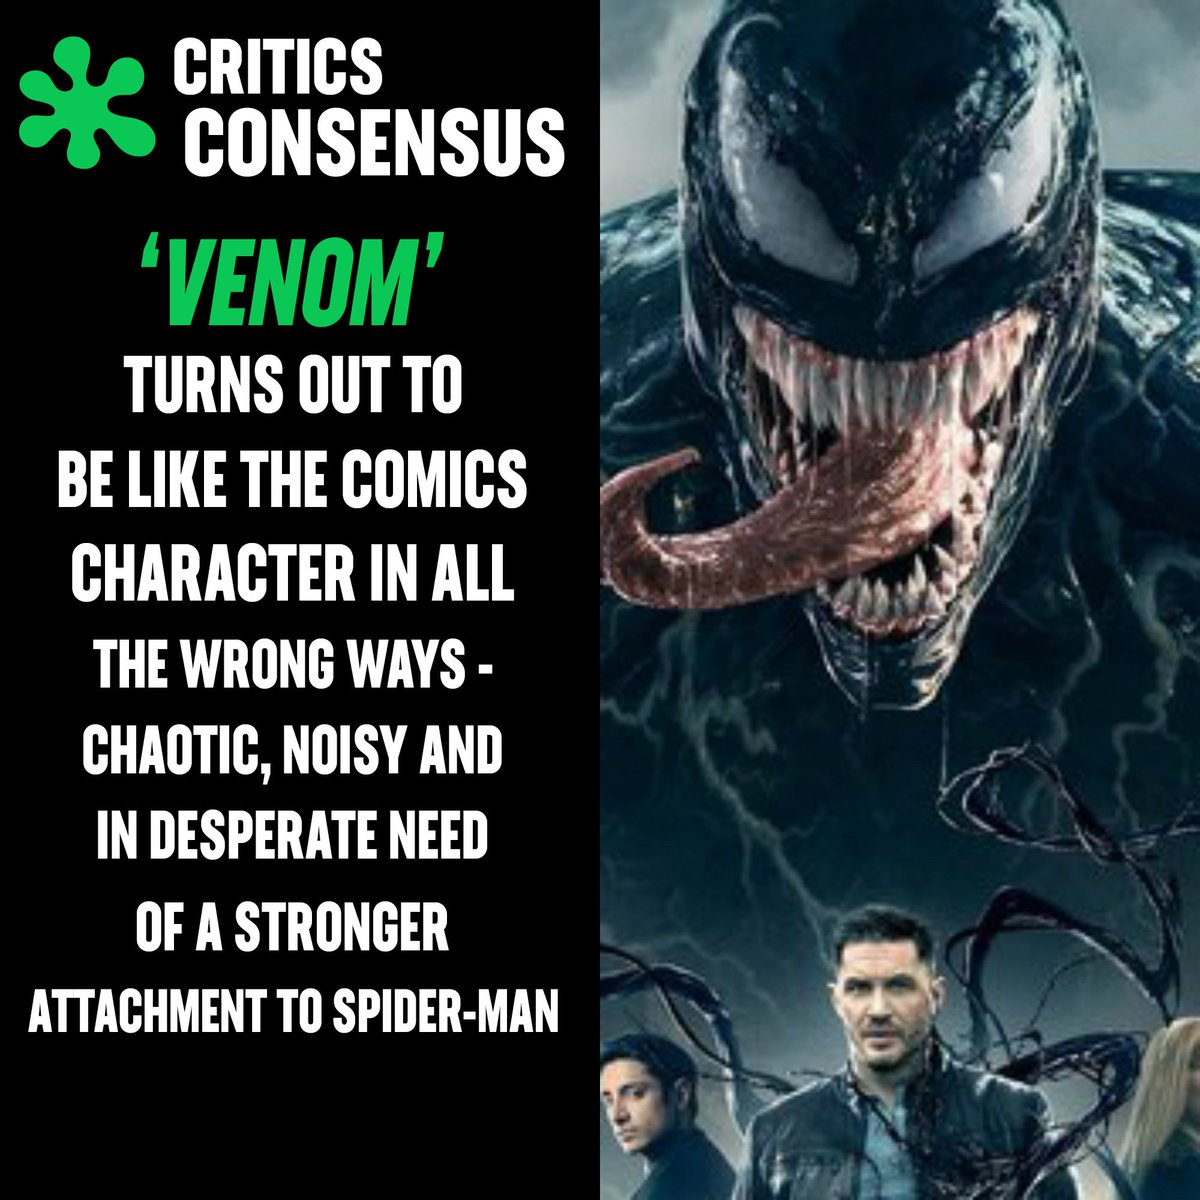 #Venom is currently #Rotten at 30% on the #Tomatometer, with 111 reviews https://t.co/OtIAvJjGdT